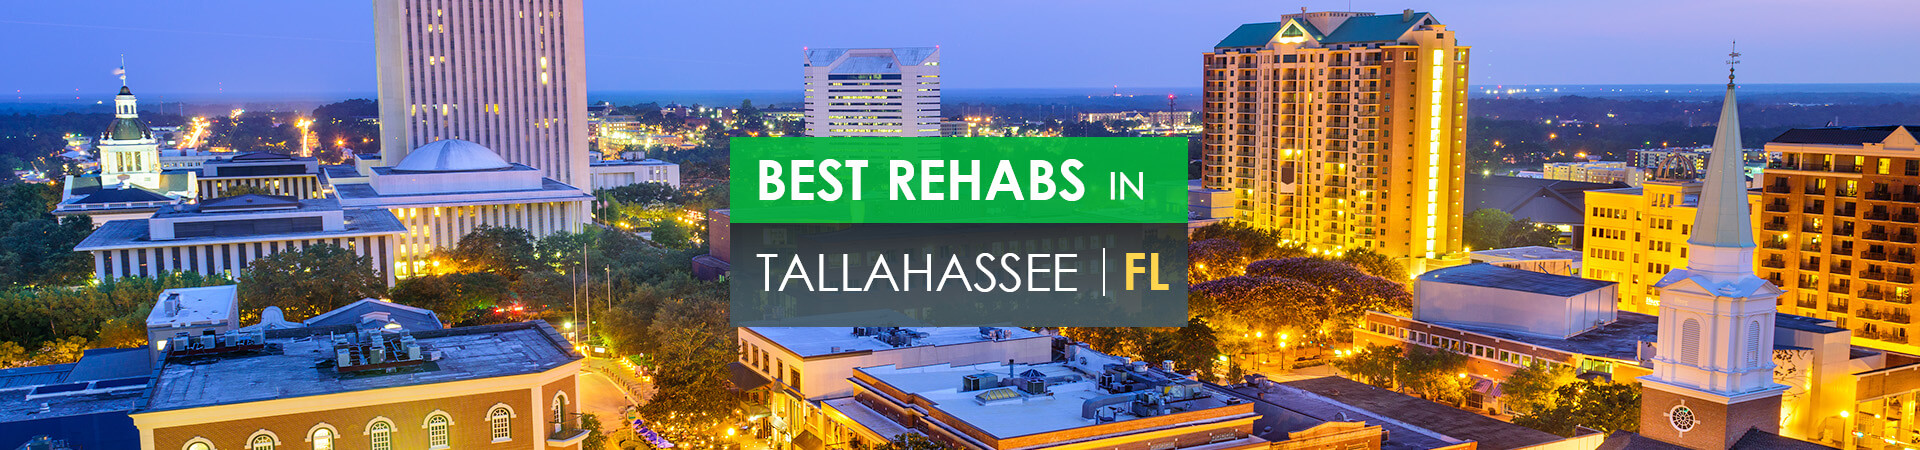 Best rehabs in Tallahassee, FL